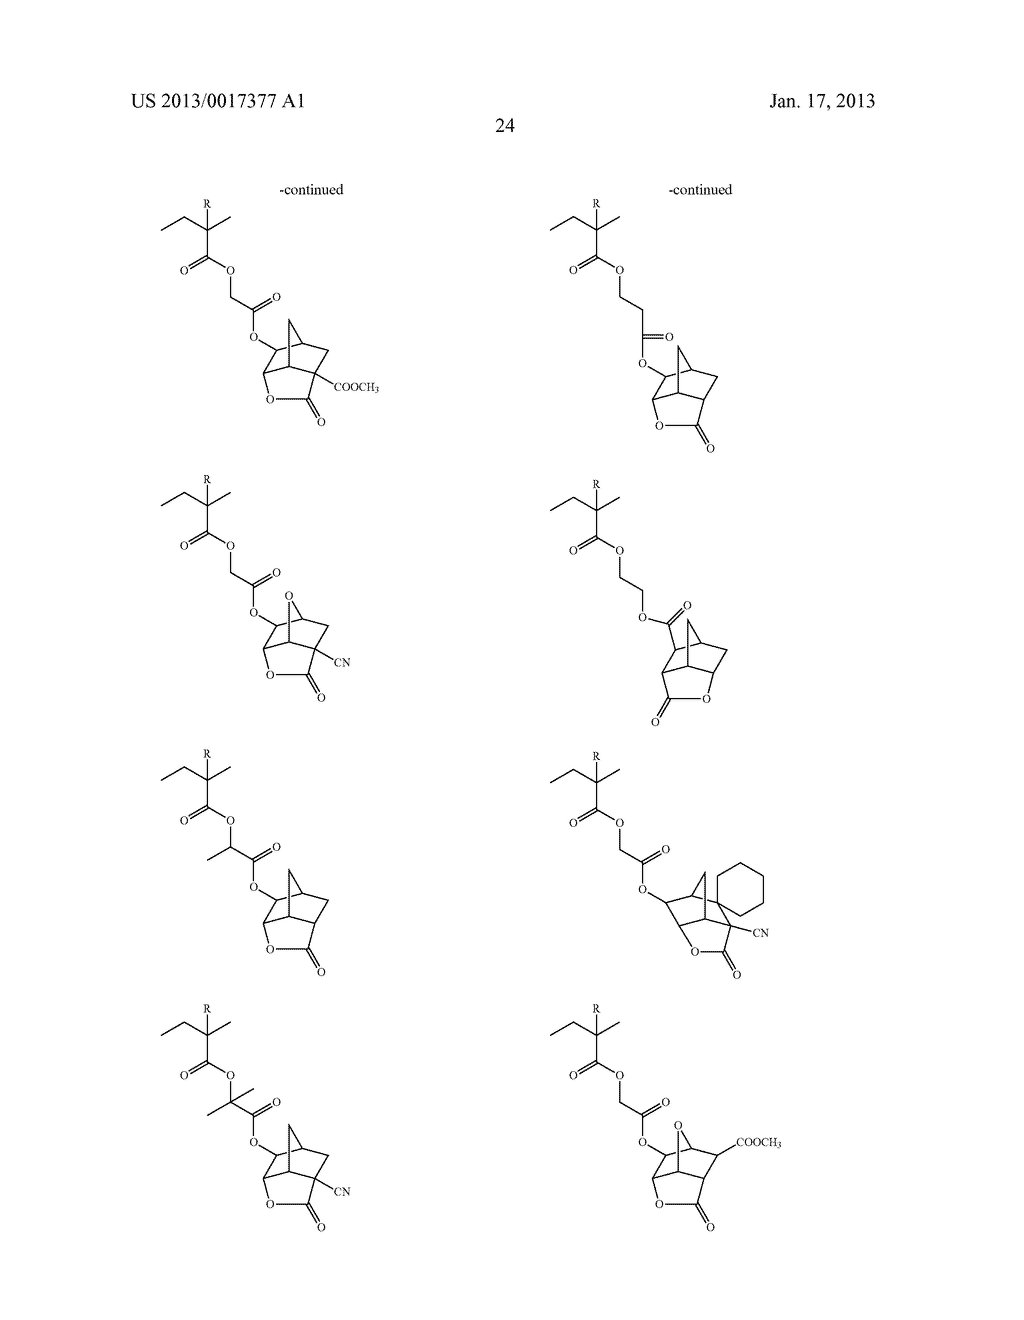 ACTINIC-RAY- OR RADIATION-SENSITIVE RESIN COMPOSITION AND METHOD OF     FORMING PATTERN USING THE SAMEAANM Kataoka; ShoheiAACI ShizuokaAACO JPAAGP Kataoka; Shohei Shizuoka JPAANM Iwato; KaoruAACI ShizuokaAACO JPAAGP Iwato; Kaoru Shizuoka JPAANM Kamimura; SouAACI ShizuokaAACO JPAAGP Kamimura; Sou Shizuoka JPAANM Tsuchihashi; ToruAACI ShizuokaAACO JPAAGP Tsuchihashi; Toru Shizuoka JPAANM Enomoto; YuichiroAACI ShizuokaAACO JPAAGP Enomoto; Yuichiro Shizuoka JPAANM Fujii; KanaAACI ShizuokaAACO JPAAGP Fujii; Kana Shizuoka JPAANM Mizutani; KazuyoshiAACI ShizuokaAACO JPAAGP Mizutani; Kazuyoshi Shizuoka JPAANM Tarutani; ShinjiAACI ShizuokaAACO JPAAGP Tarutani; Shinji Shizuoka JPAANM Kato; KeitaAACI ShizuokaAACO JPAAGP Kato; Keita Shizuoka JP - diagram, schematic, and image 25